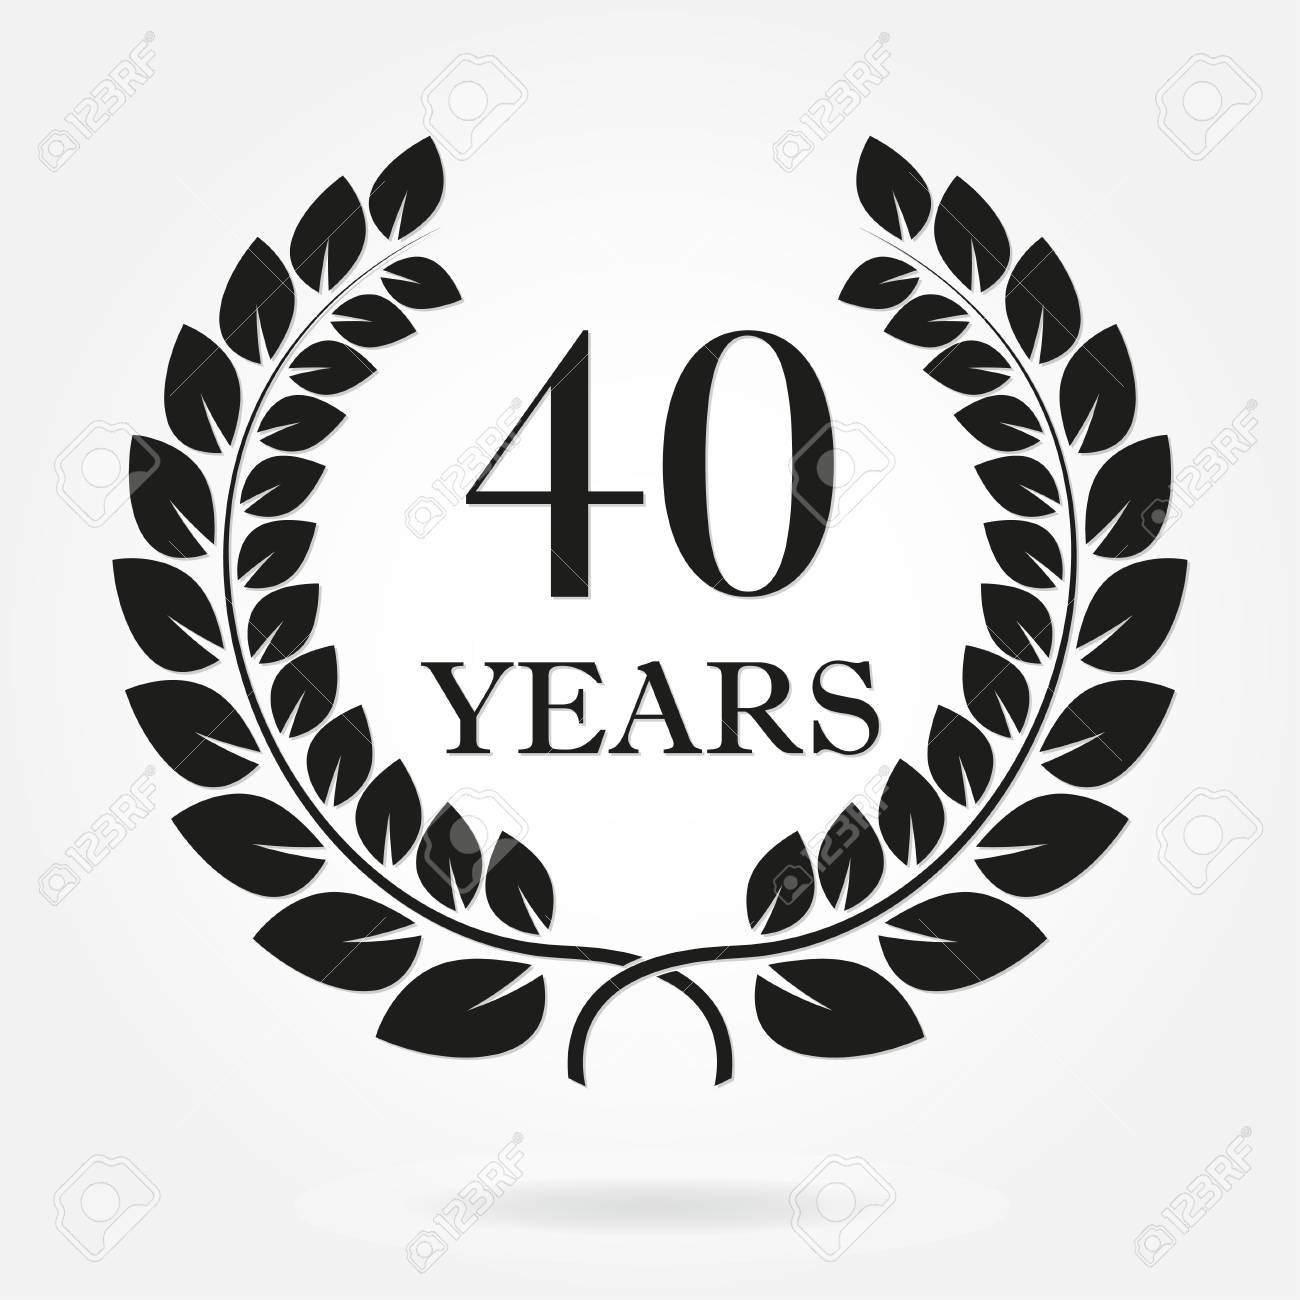 40 years anniversary laurel wreath sign or emblem template for